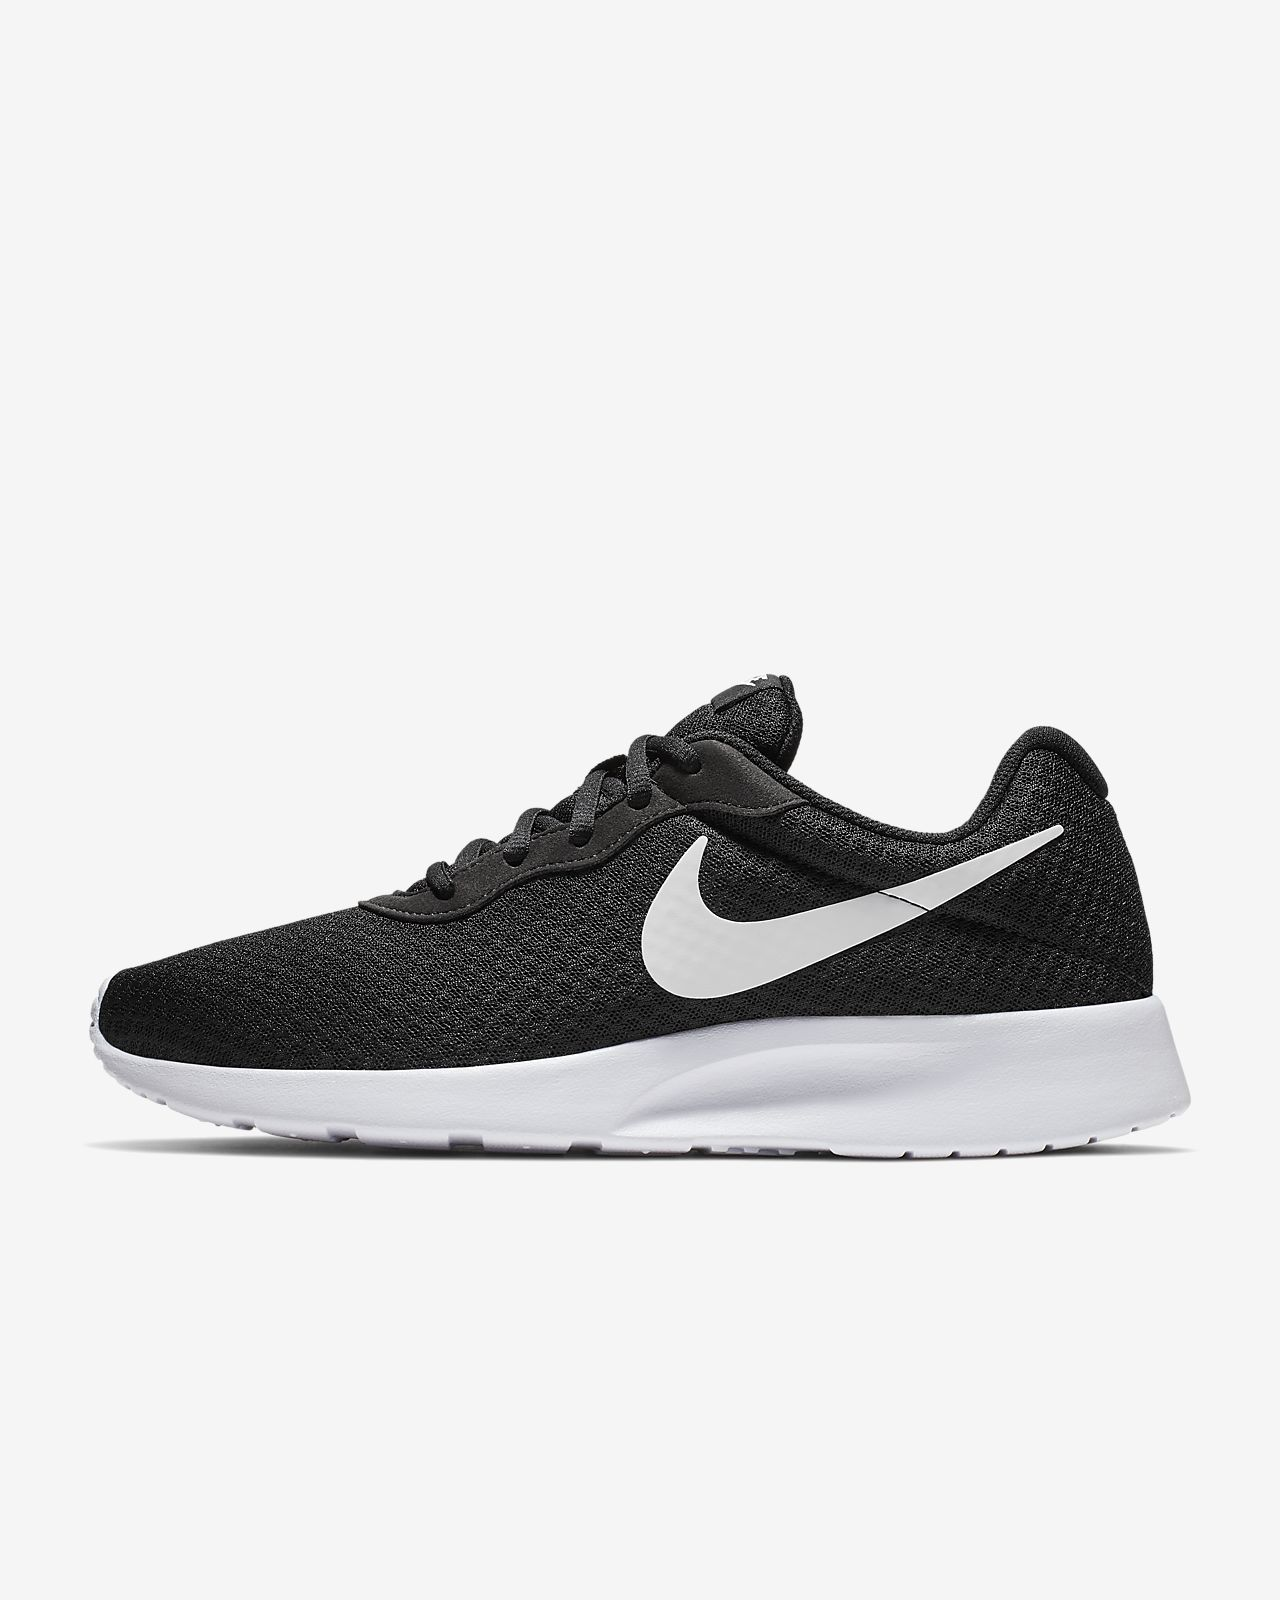 low priced b5e41 886db Low Resolution Nike Tanjun Men s Shoe Nike Tanjun Men s Shoe